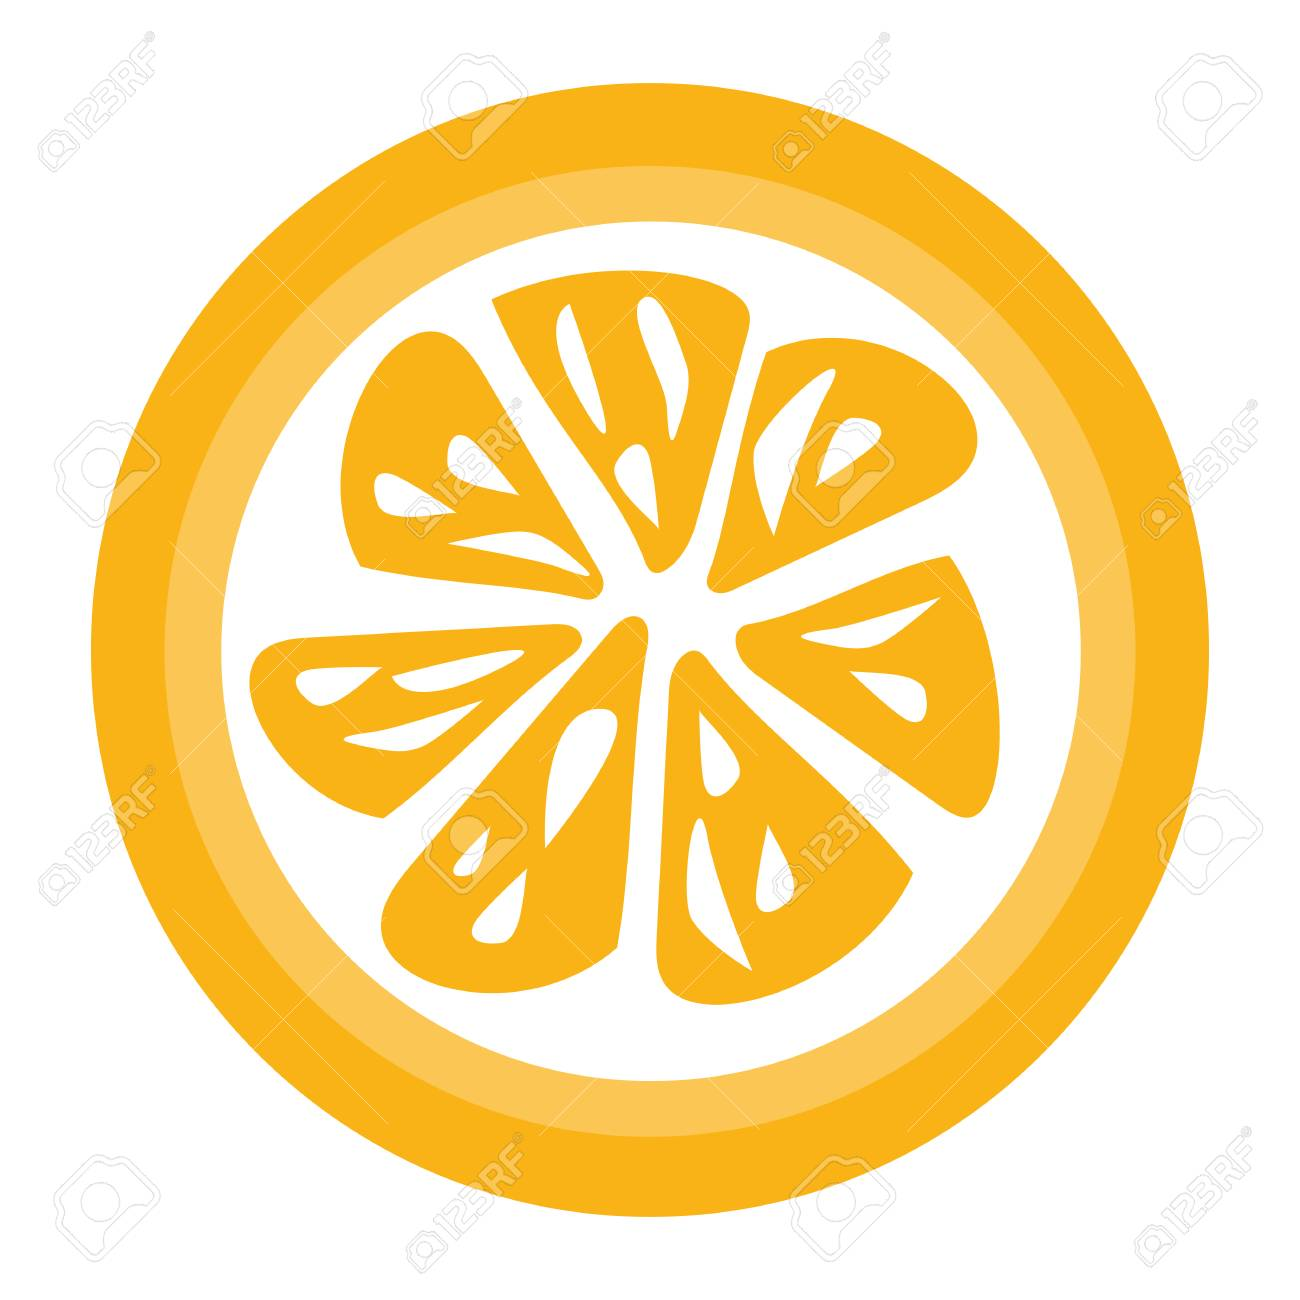 orange slice vector for download isolated on white background